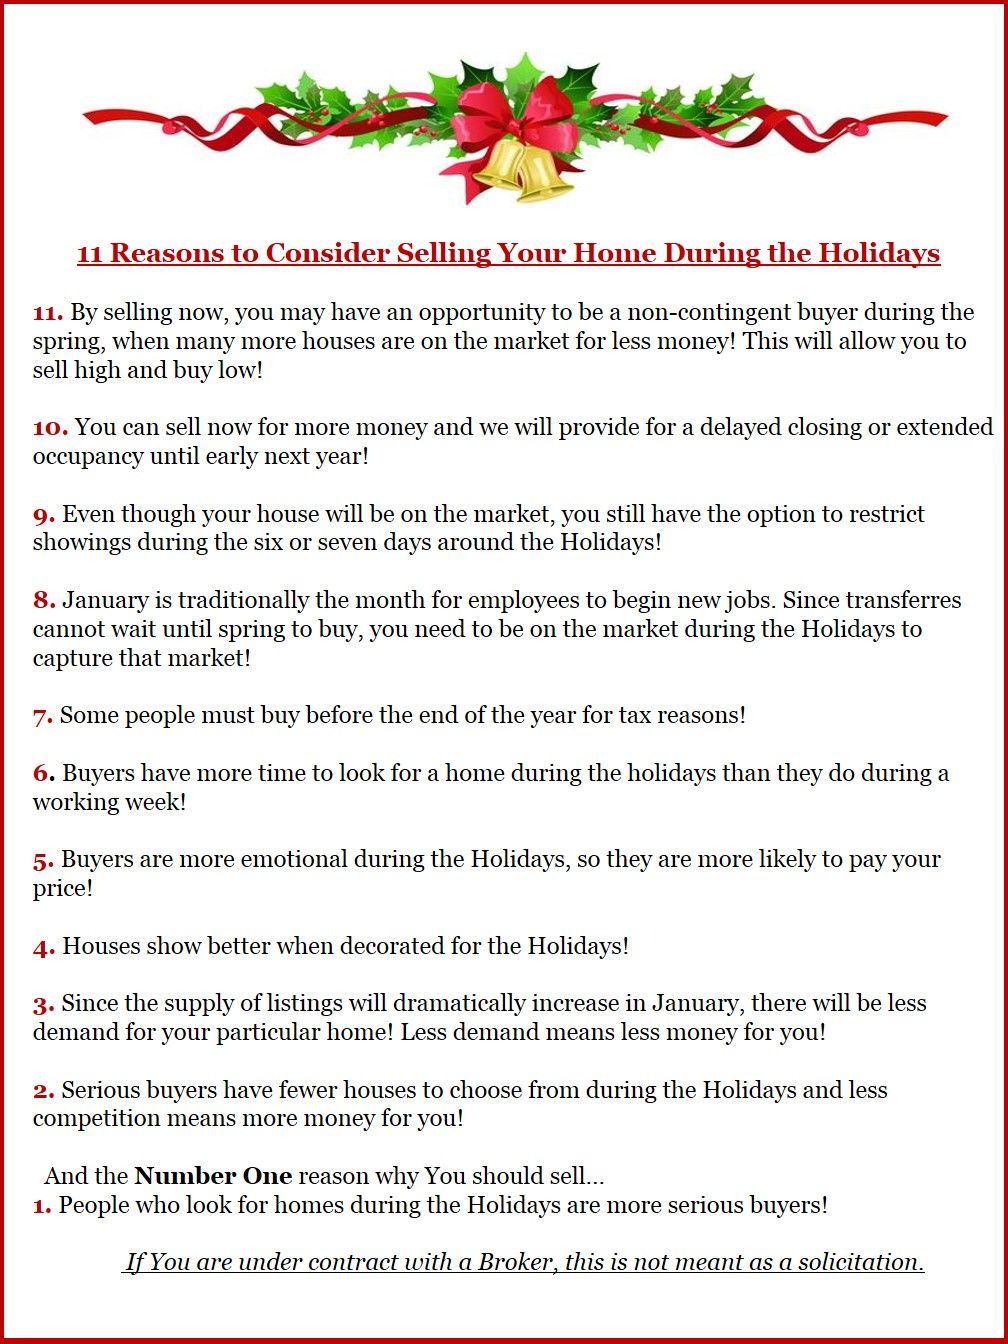 Don't let the holiday season stop you from selling your